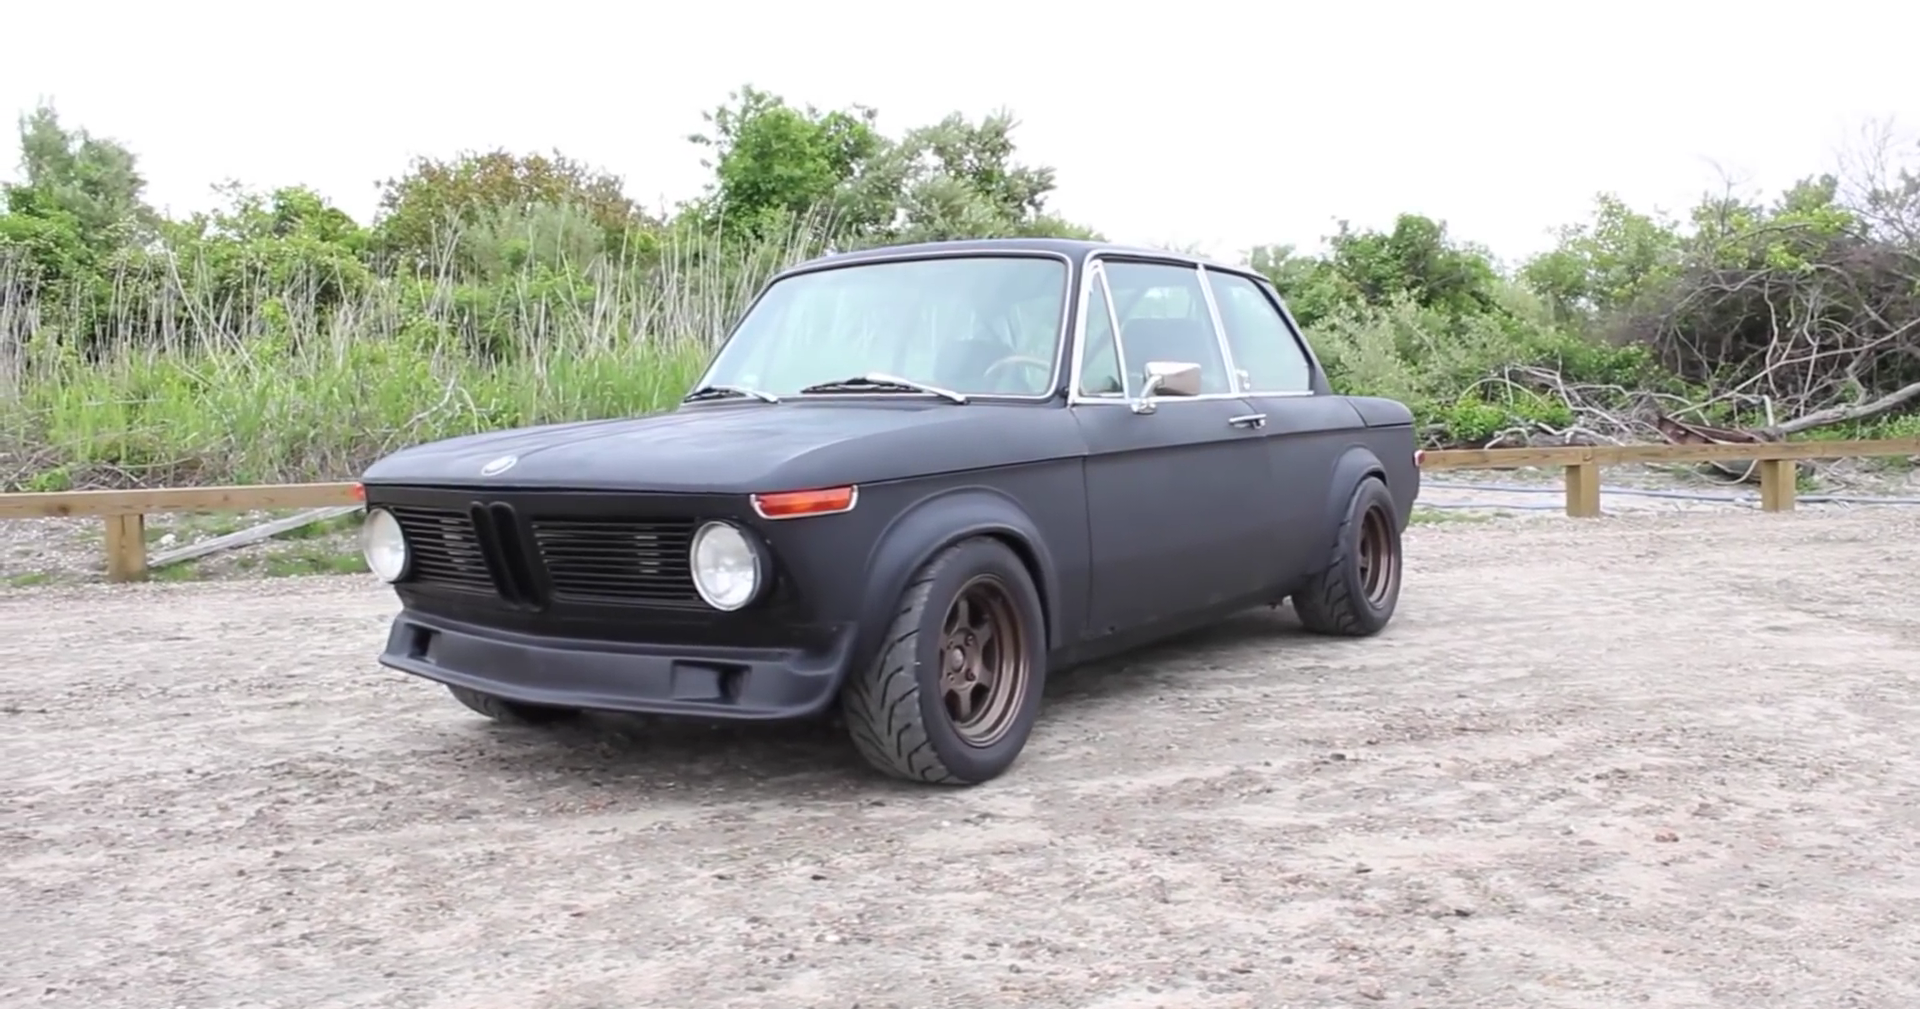 1973 Bmw 2002 With Over 400 Hp Could Be Considered The Perfect Sleeper Autoevolution